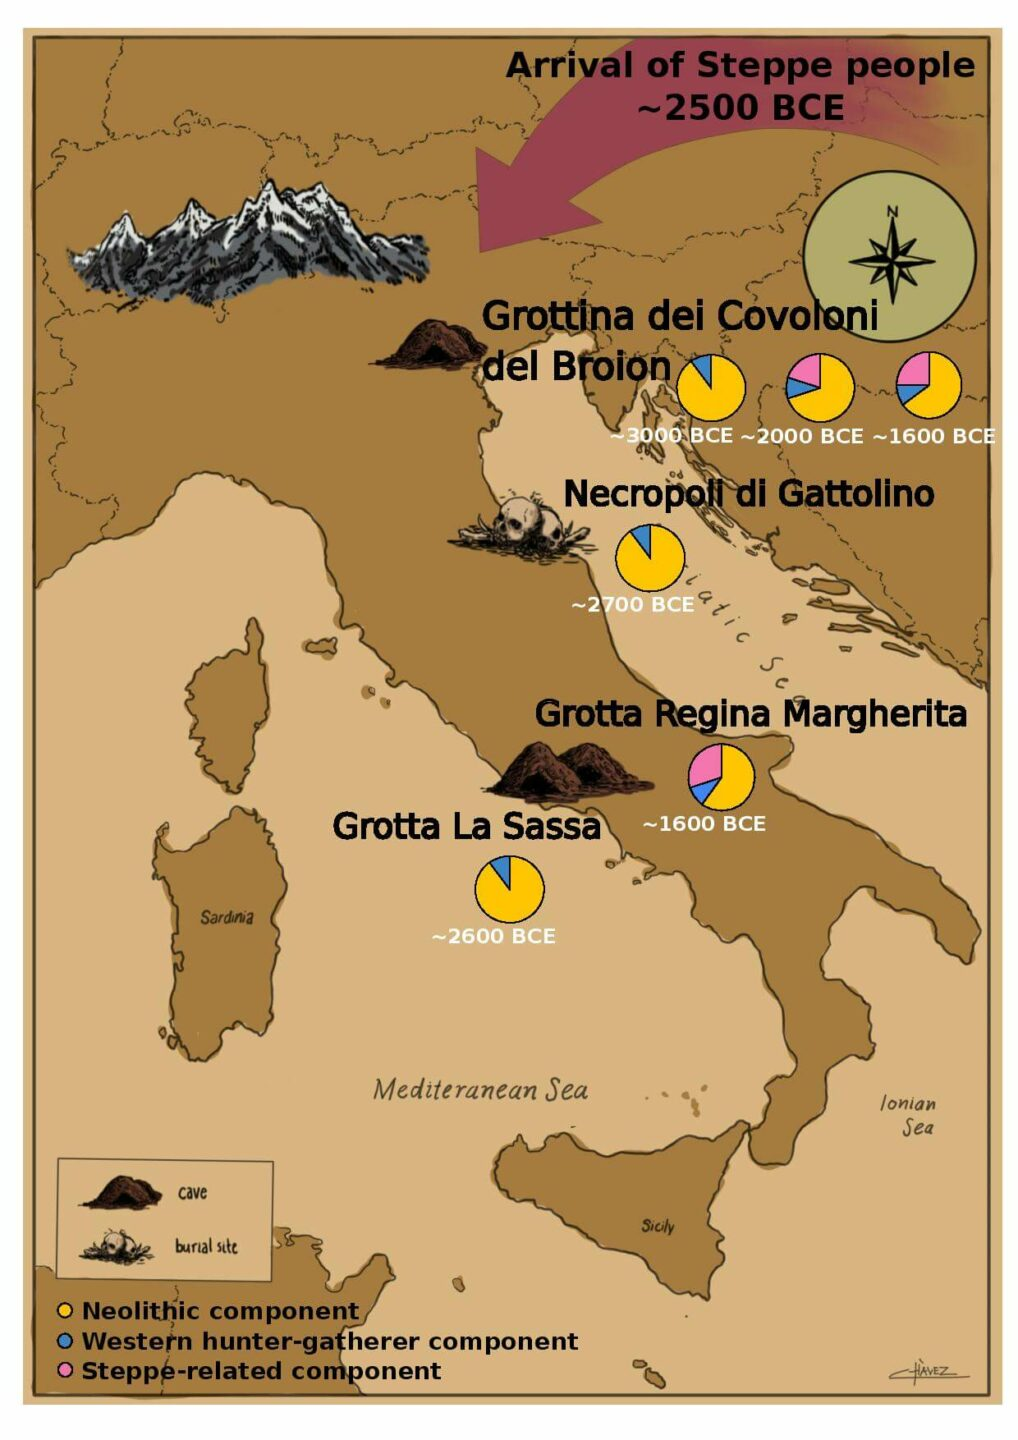 Map showing the arrival of Steepe people into ancient Italy. Pie charts show the component of DNA from different eras/geographies found in each burial site in the study. 3 pie charts have a steppe component. 3 do not.